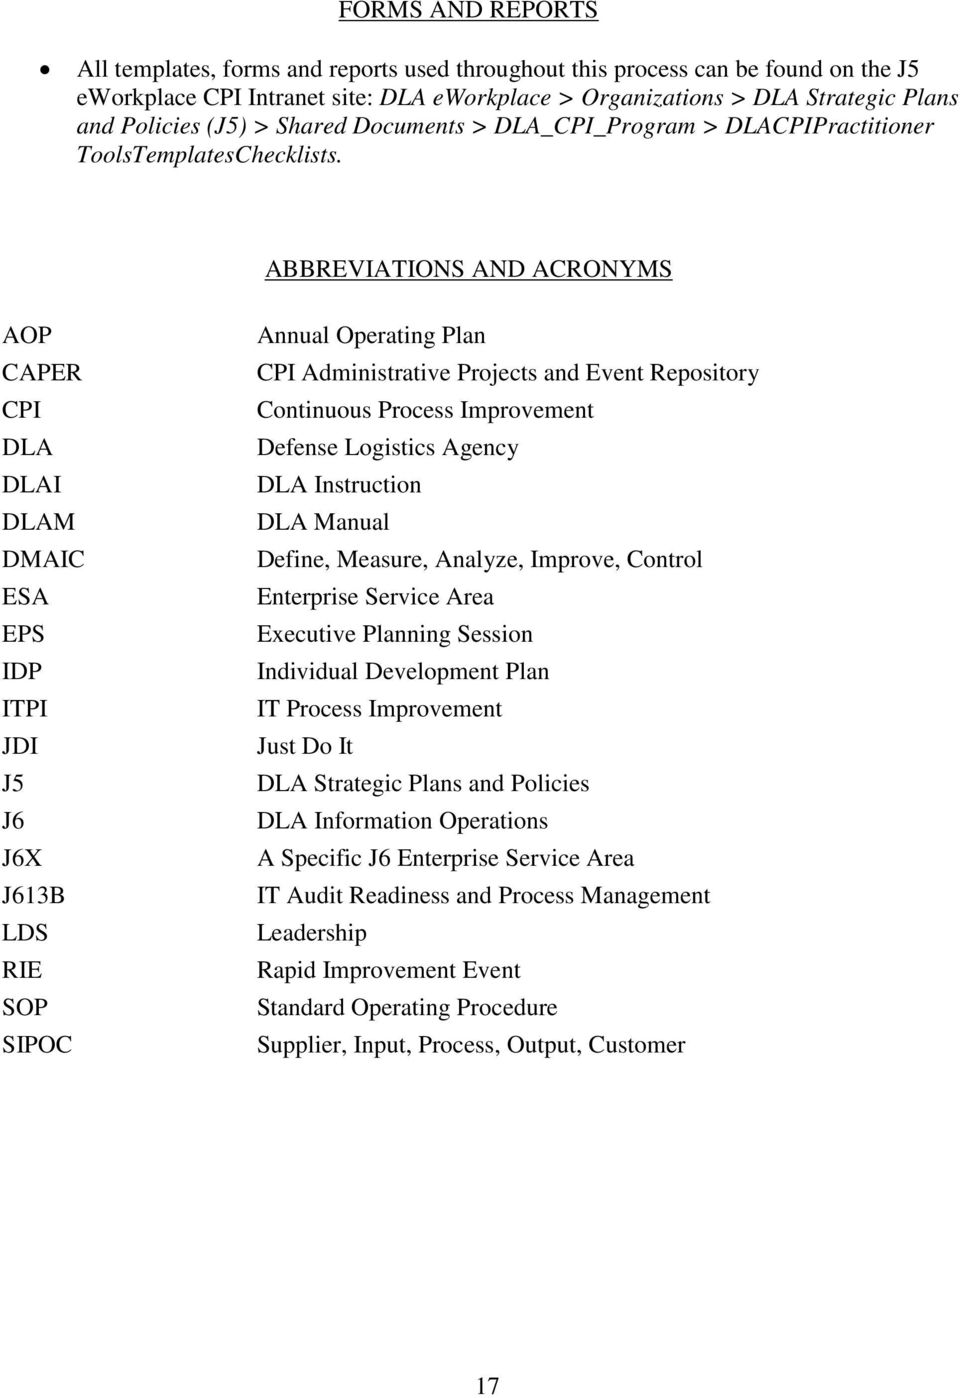 ABBREVIATIONS AND ACRONYMS AOP CAPER CPI DLA DLAI DLAM DMAIC ESA EPS IDP ITPI JDI J5 J6 J6X J613B LDS RIE SOP SIPOC Annual Oprating Plan CPI Administrativ Projcts and Evnt Rpository Continuous Procss